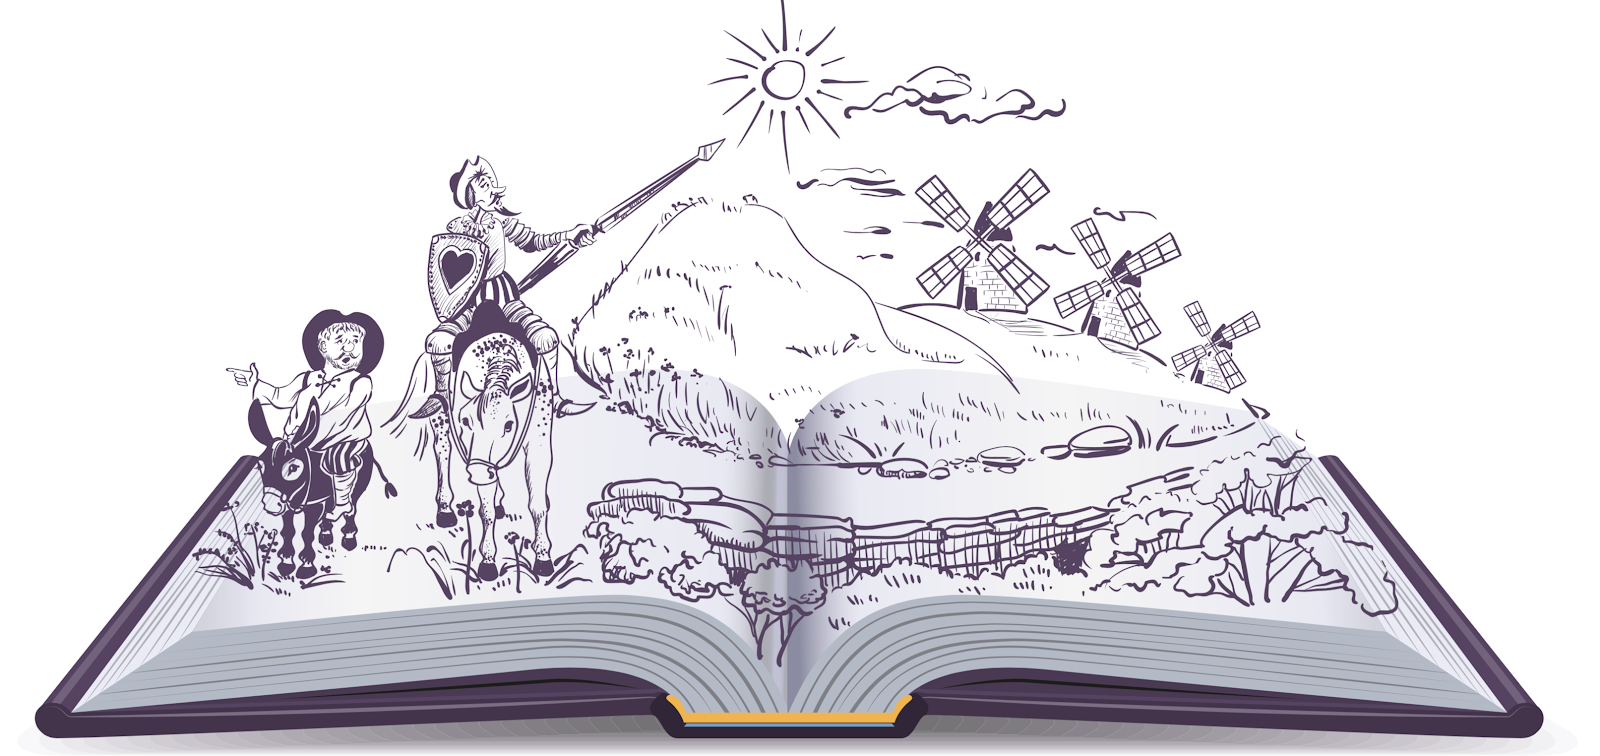 Image of an open book with an illustration of Don Quioxte emerging from the pages.